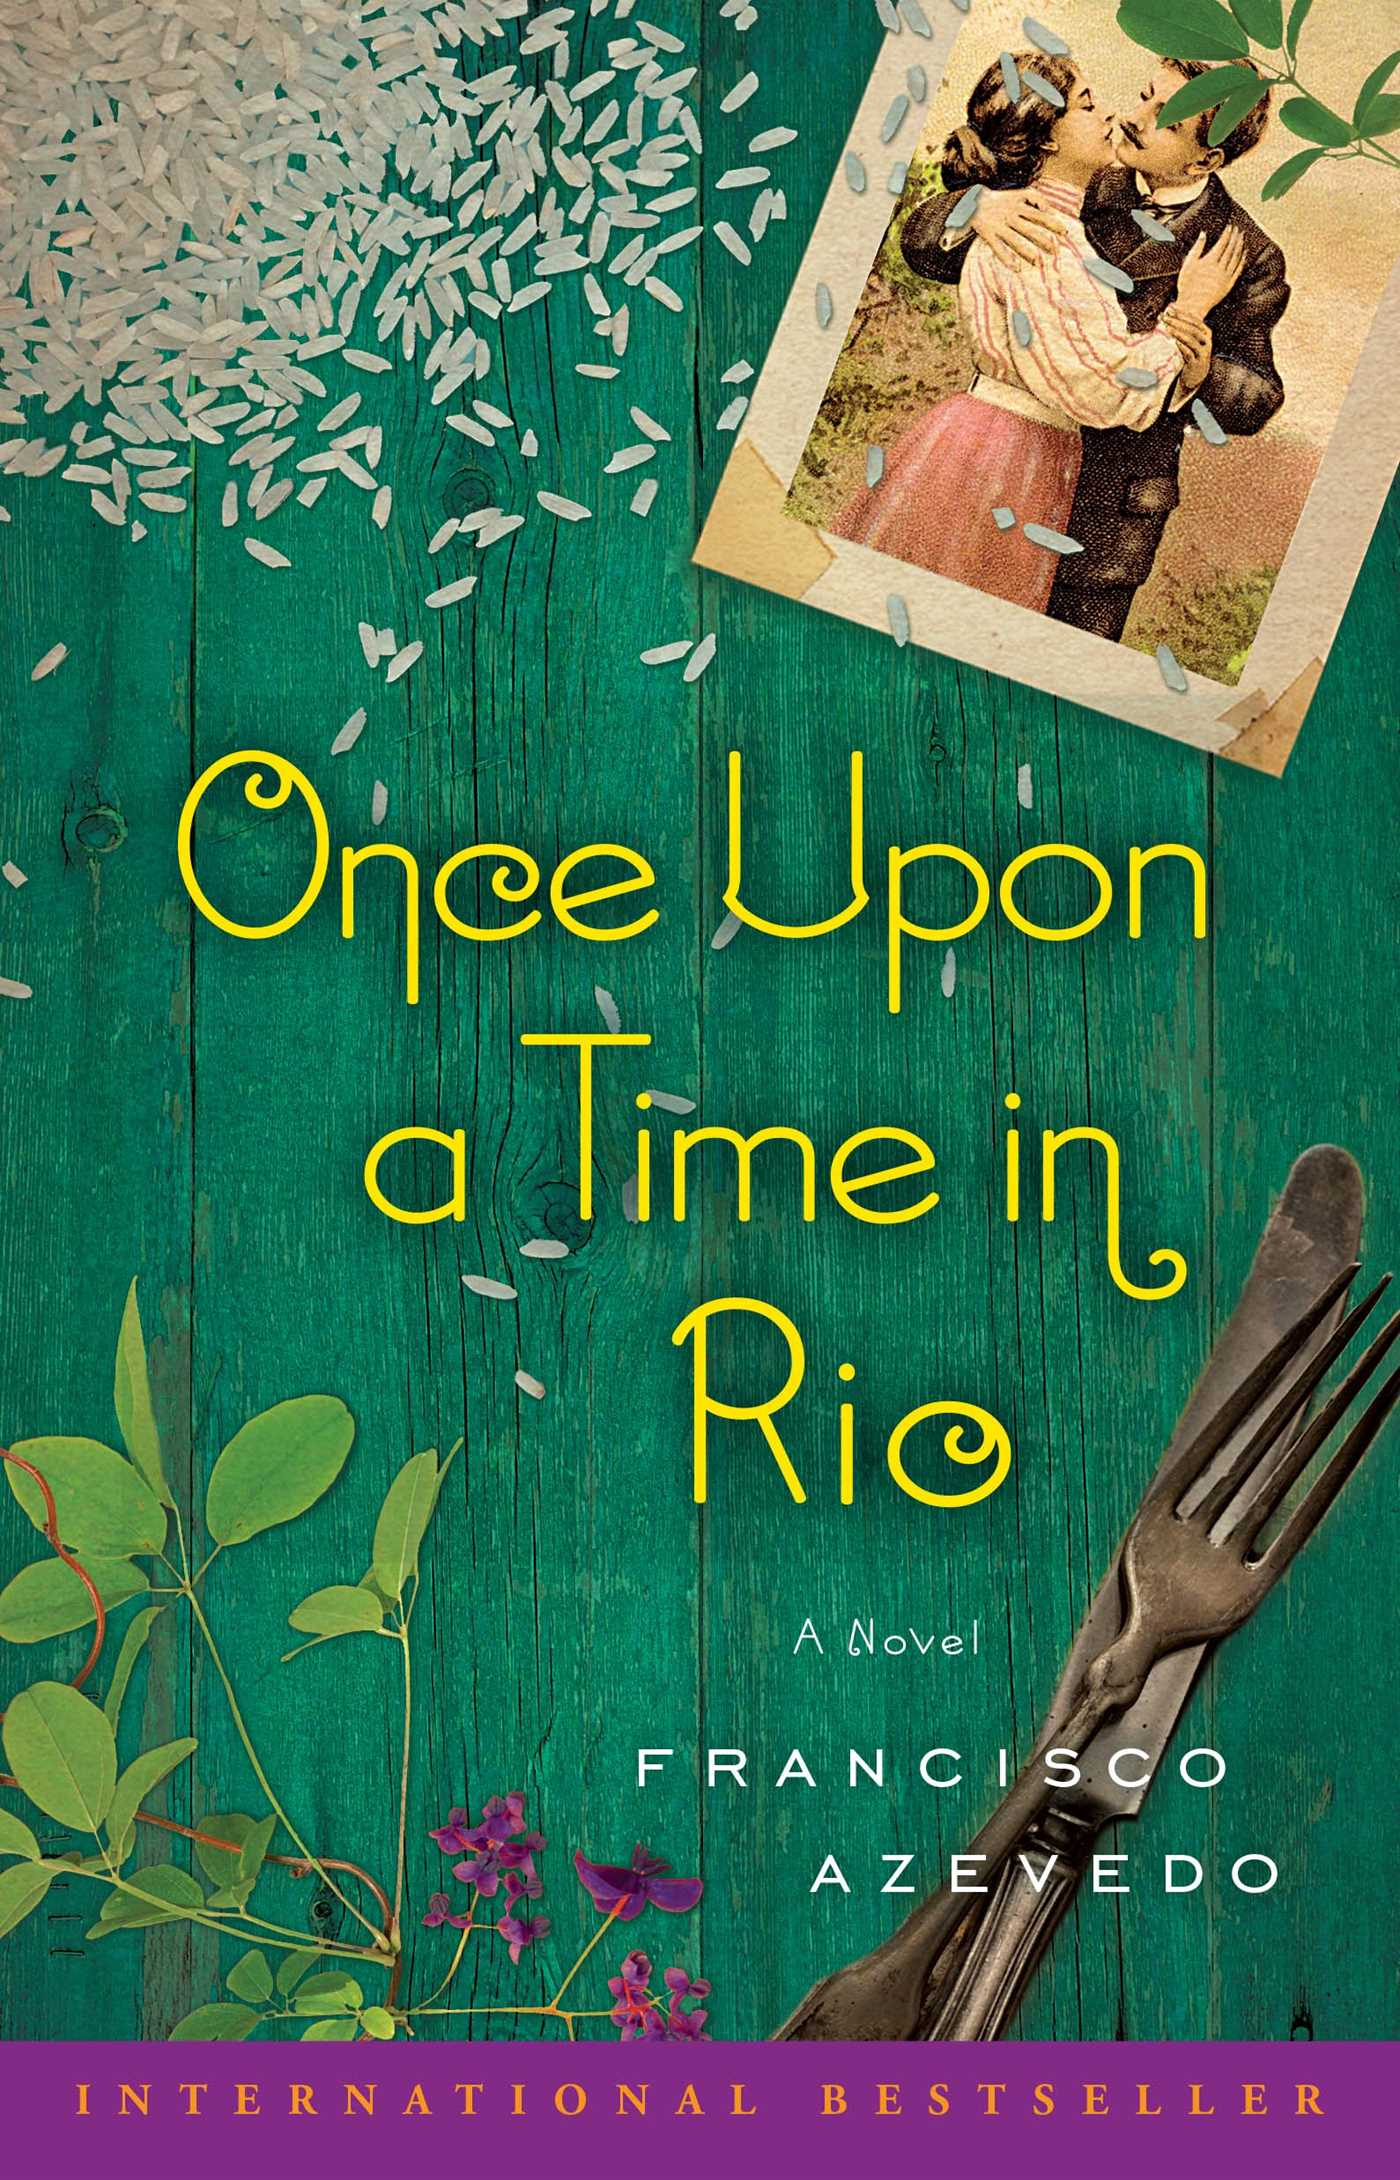 Once upon a time in rio 9781451695571 hr